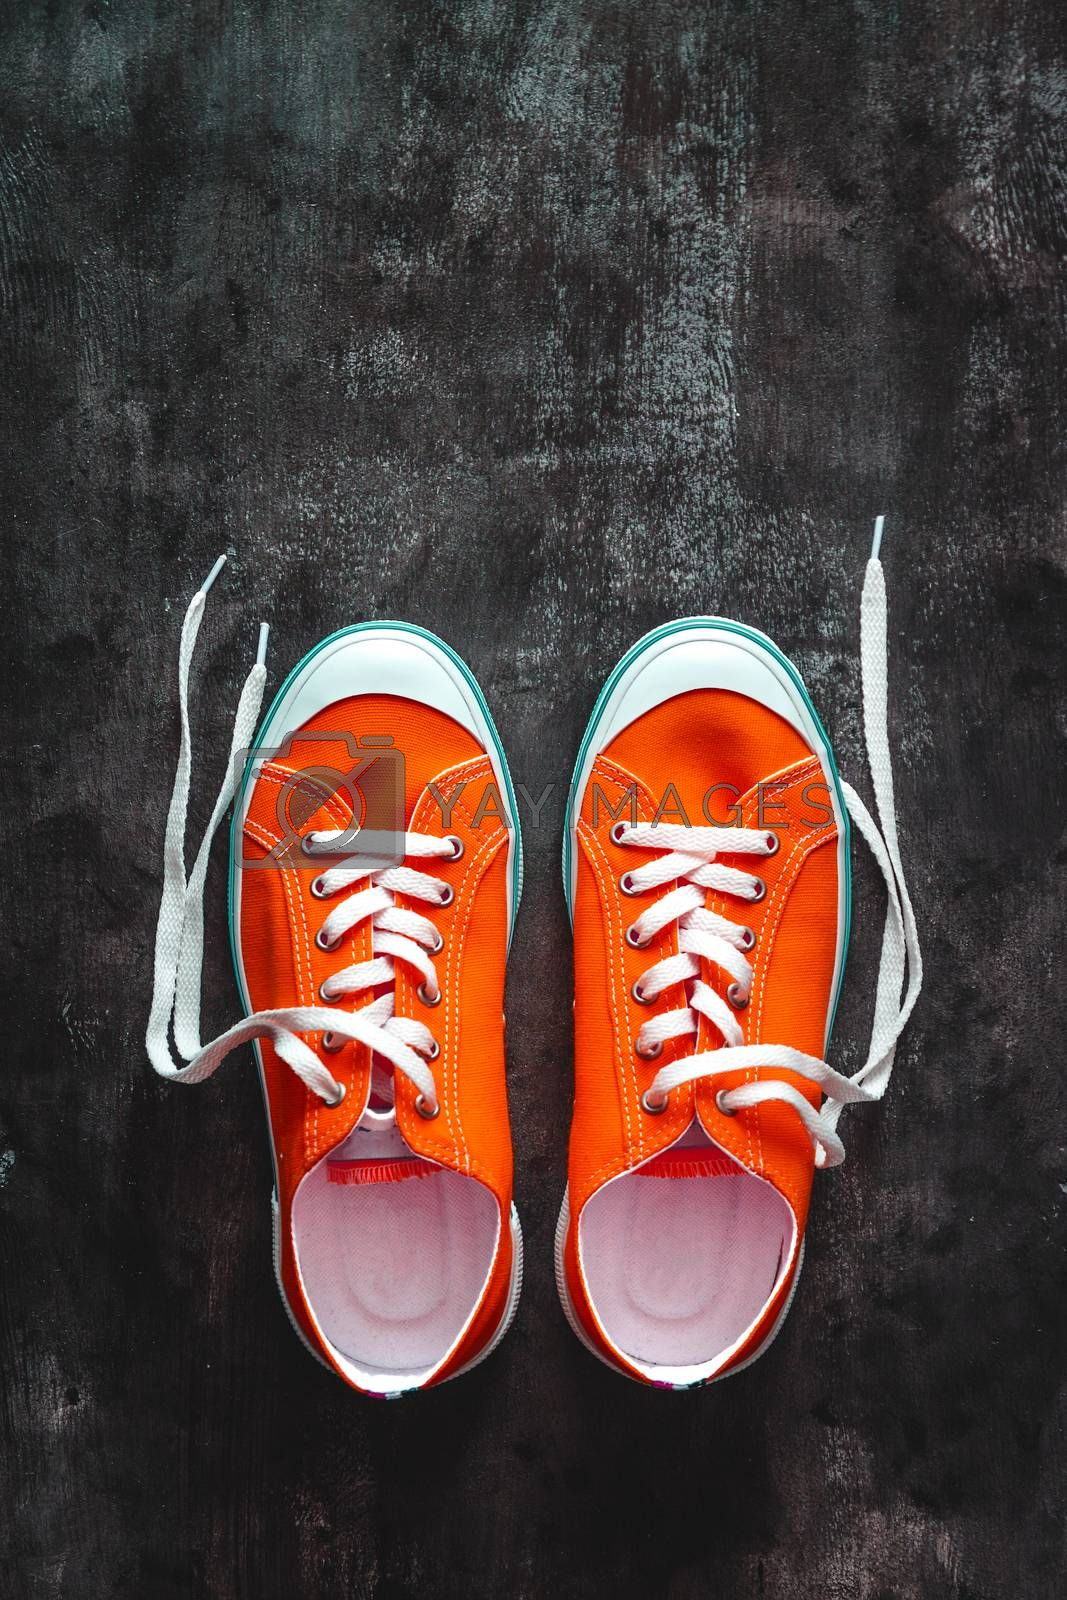 Royalty free image of red sneakers with untied laces on a dark concrete background. Co by Tanacha